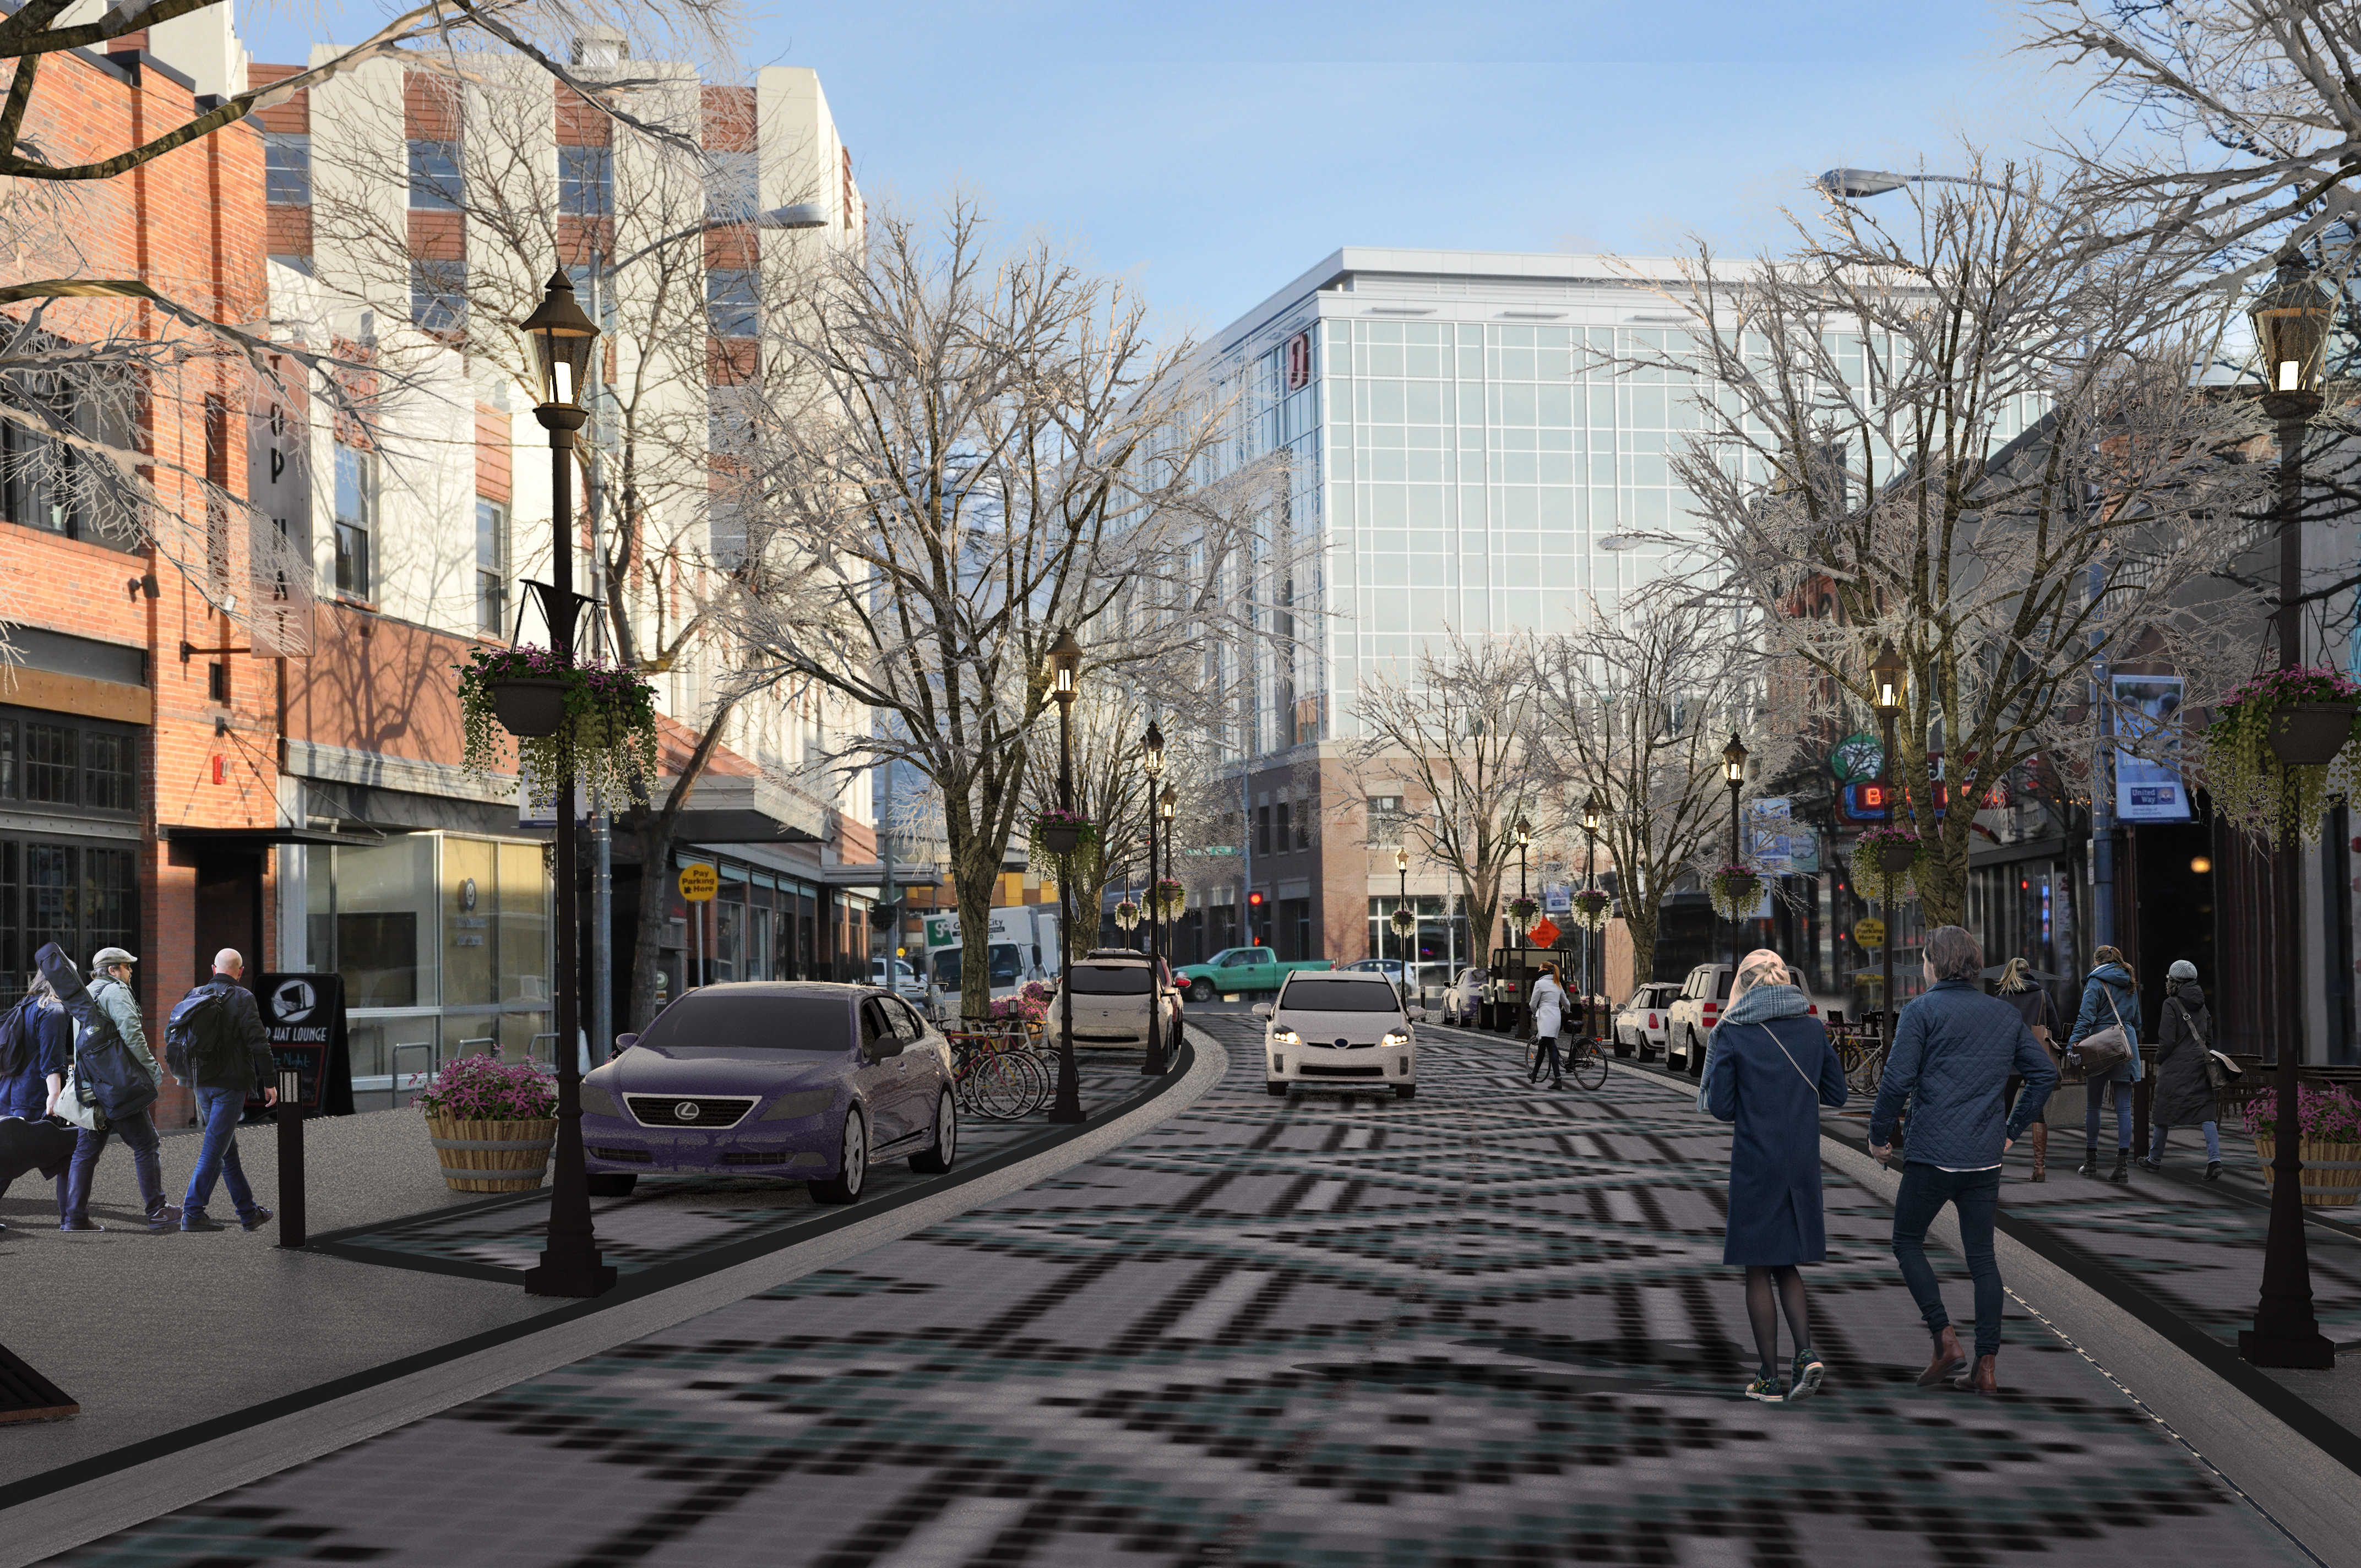 Introducing a Shared Street Concept